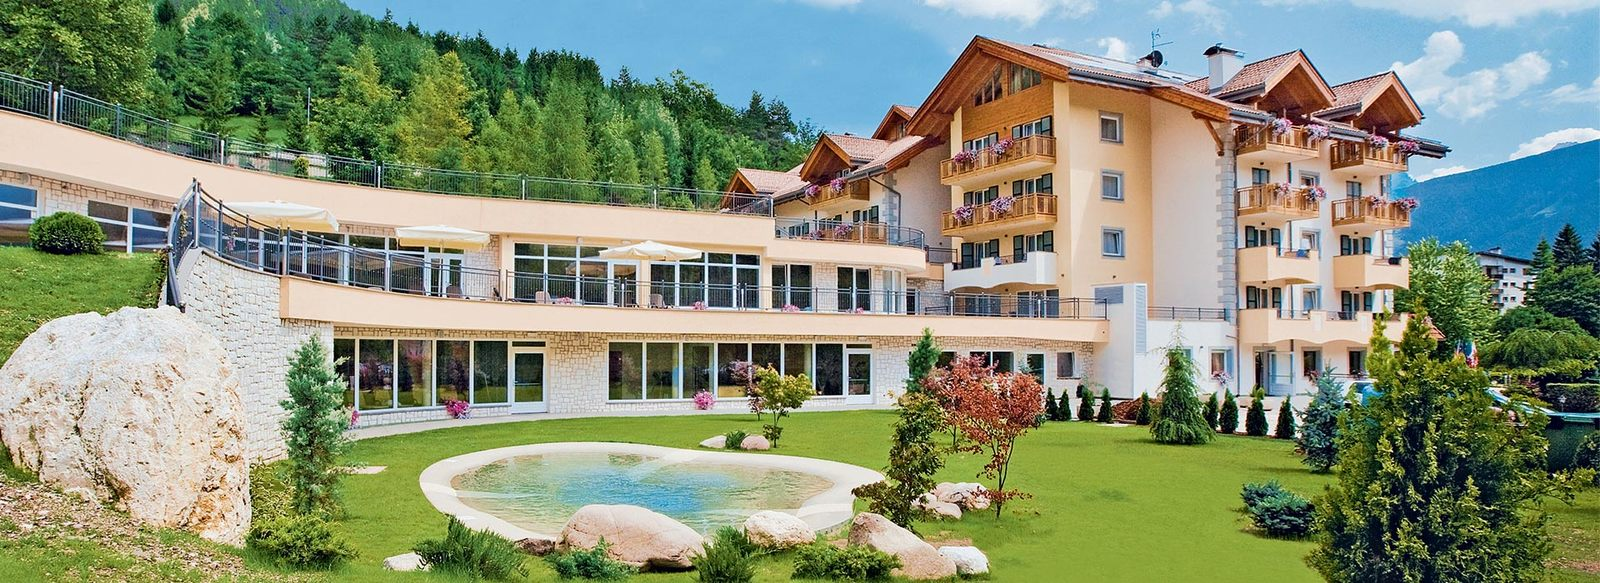 Family & SPA Resort in Val di Fiemme